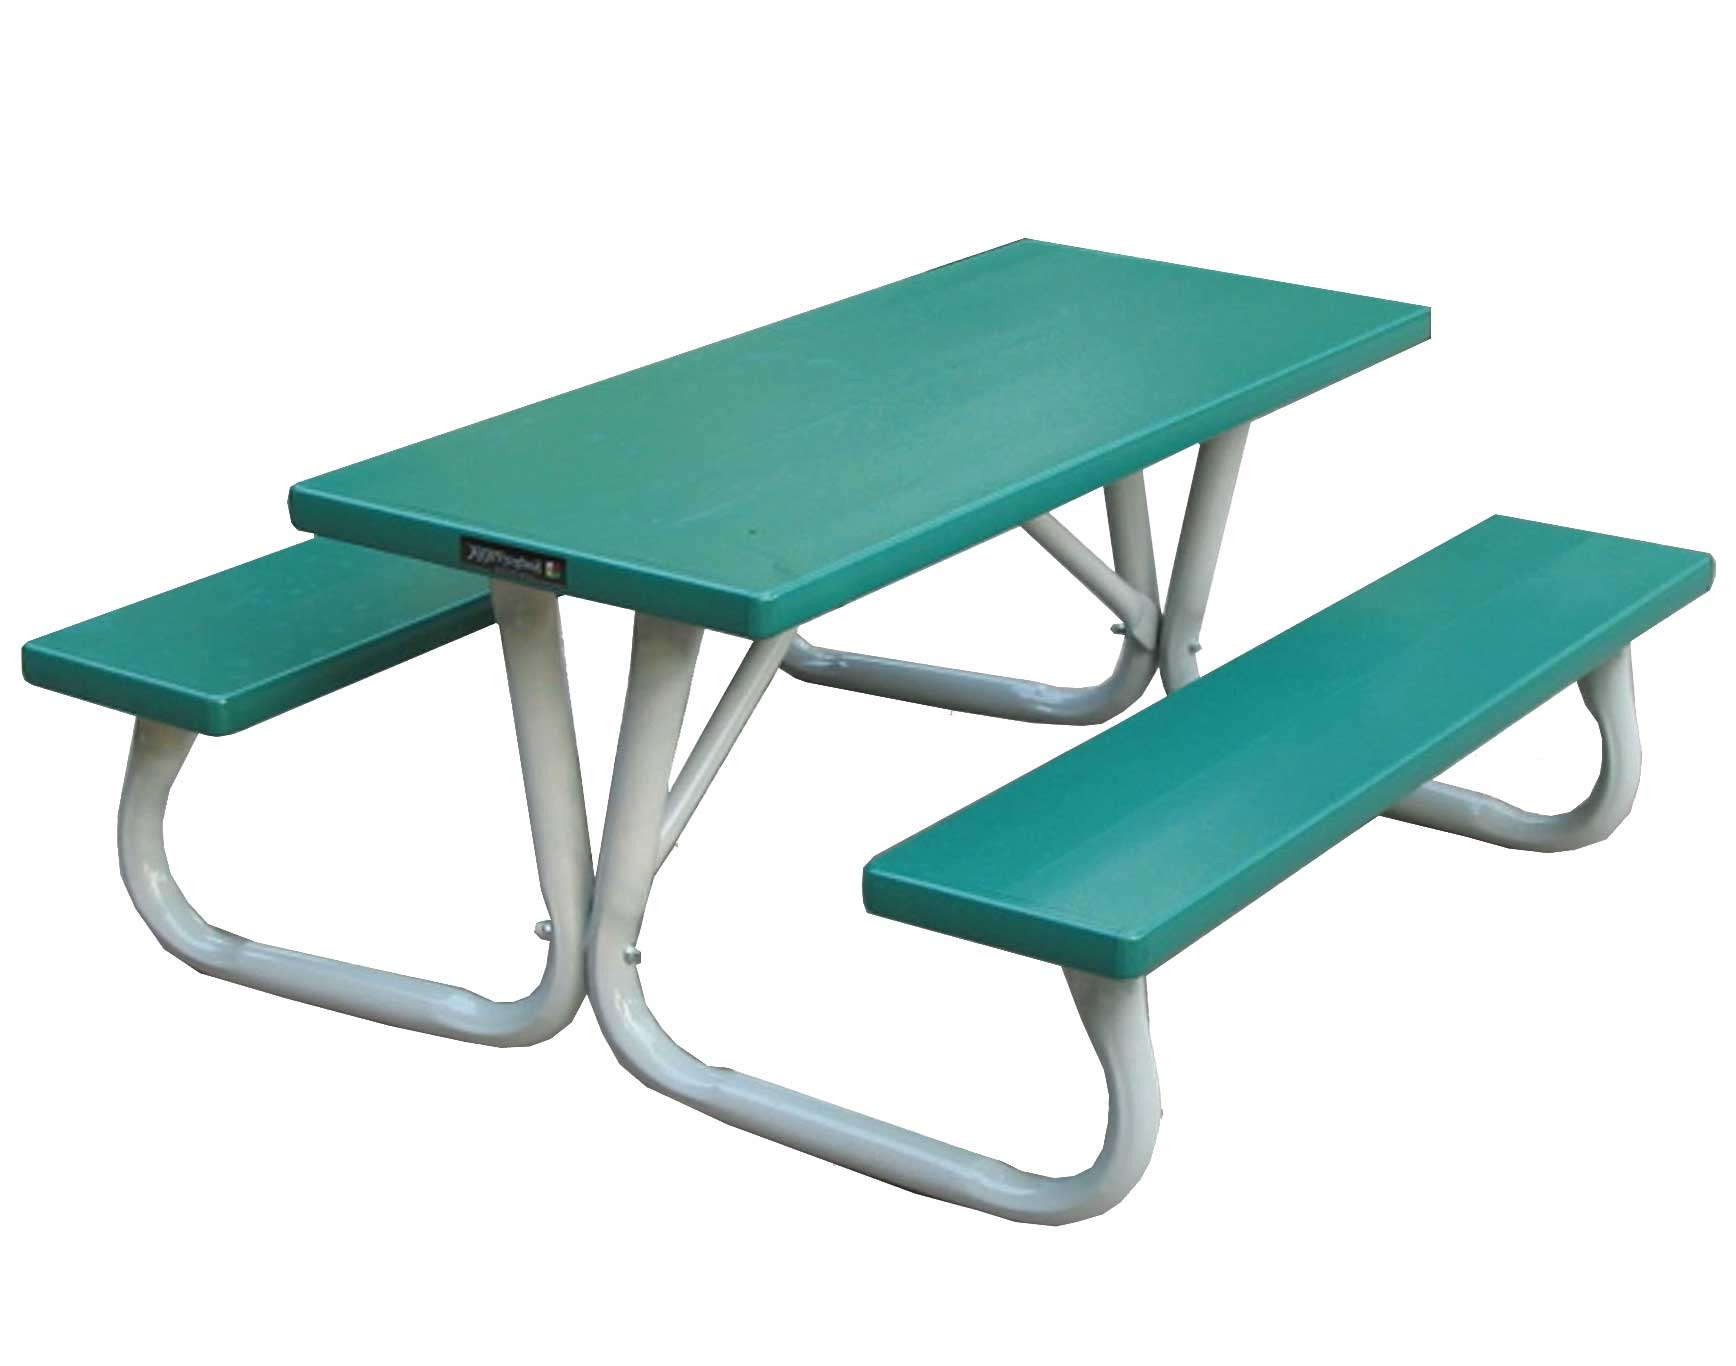 Charmant 6 Aluminum Folding Kids Picnic Table